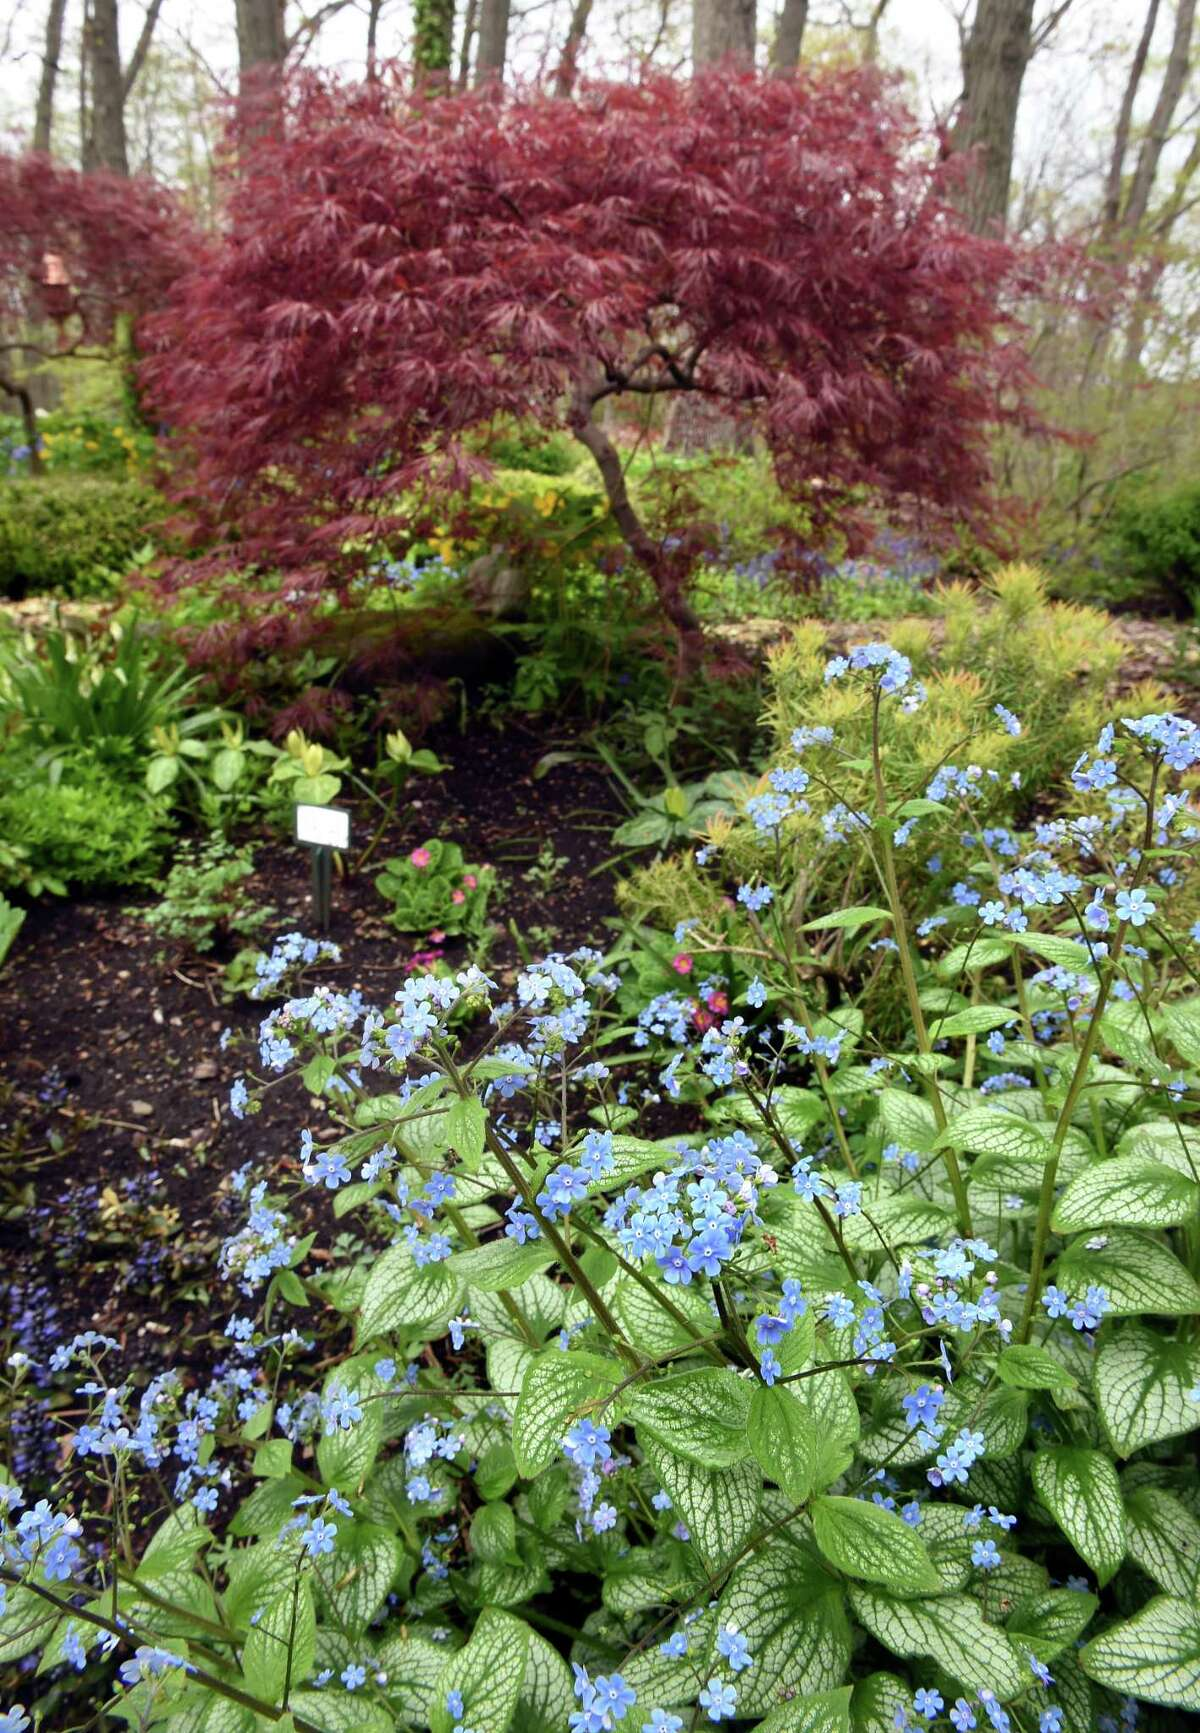 The backyard garden of Susan Anton in Woodbridge photographed on April 29, 2021 with Brunnera macrophylla in the foreground.